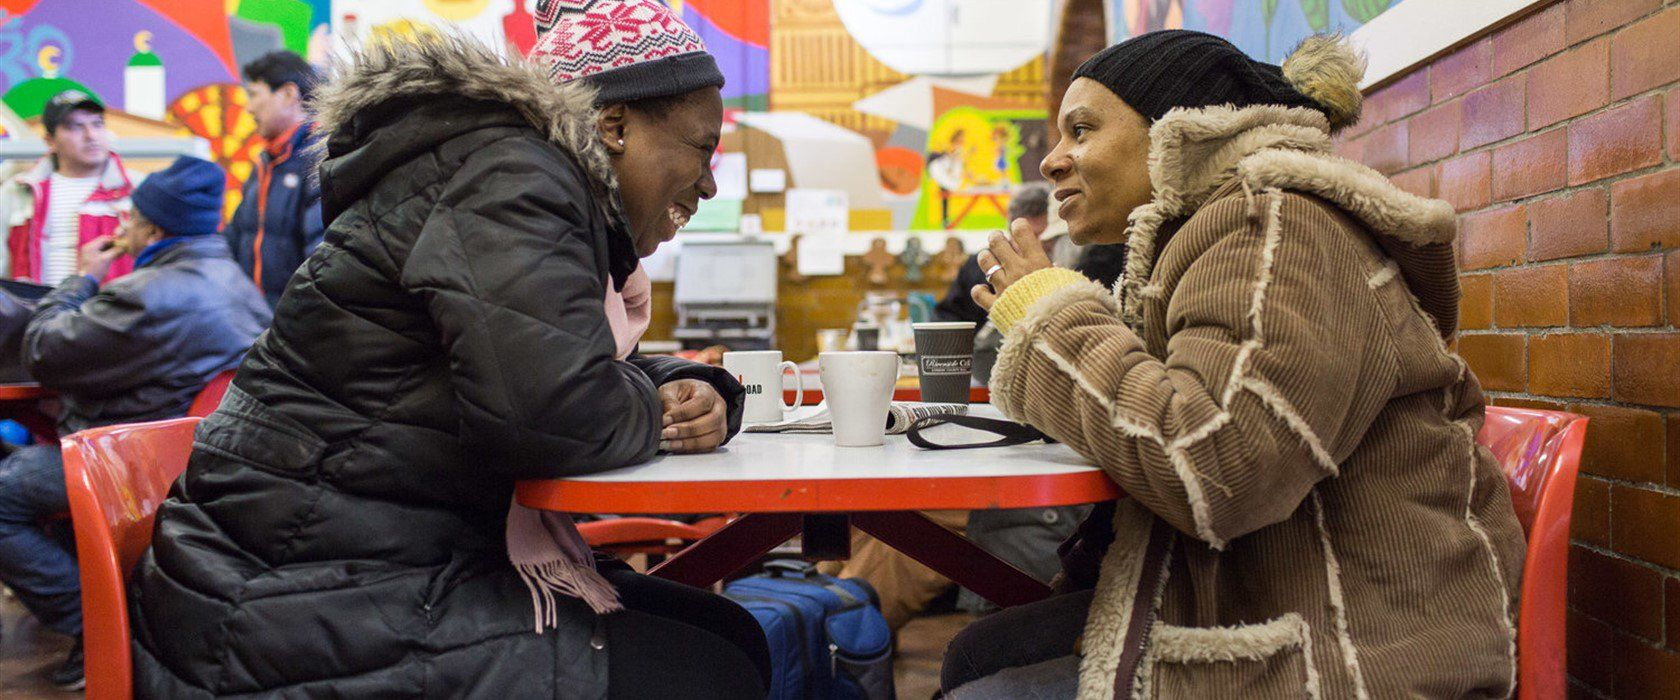 Next week sees the launch of photographer James Hopkirk's      'South London Stories' at the Ace of Clubs, a centre supporting the homeless and vulnerable in south London. Hopkirks' project investigates the human cost of austerity on Lambeth, telling local stories that highlight national issues. He will be featuring seven or eight stories relating to austerity, one […]